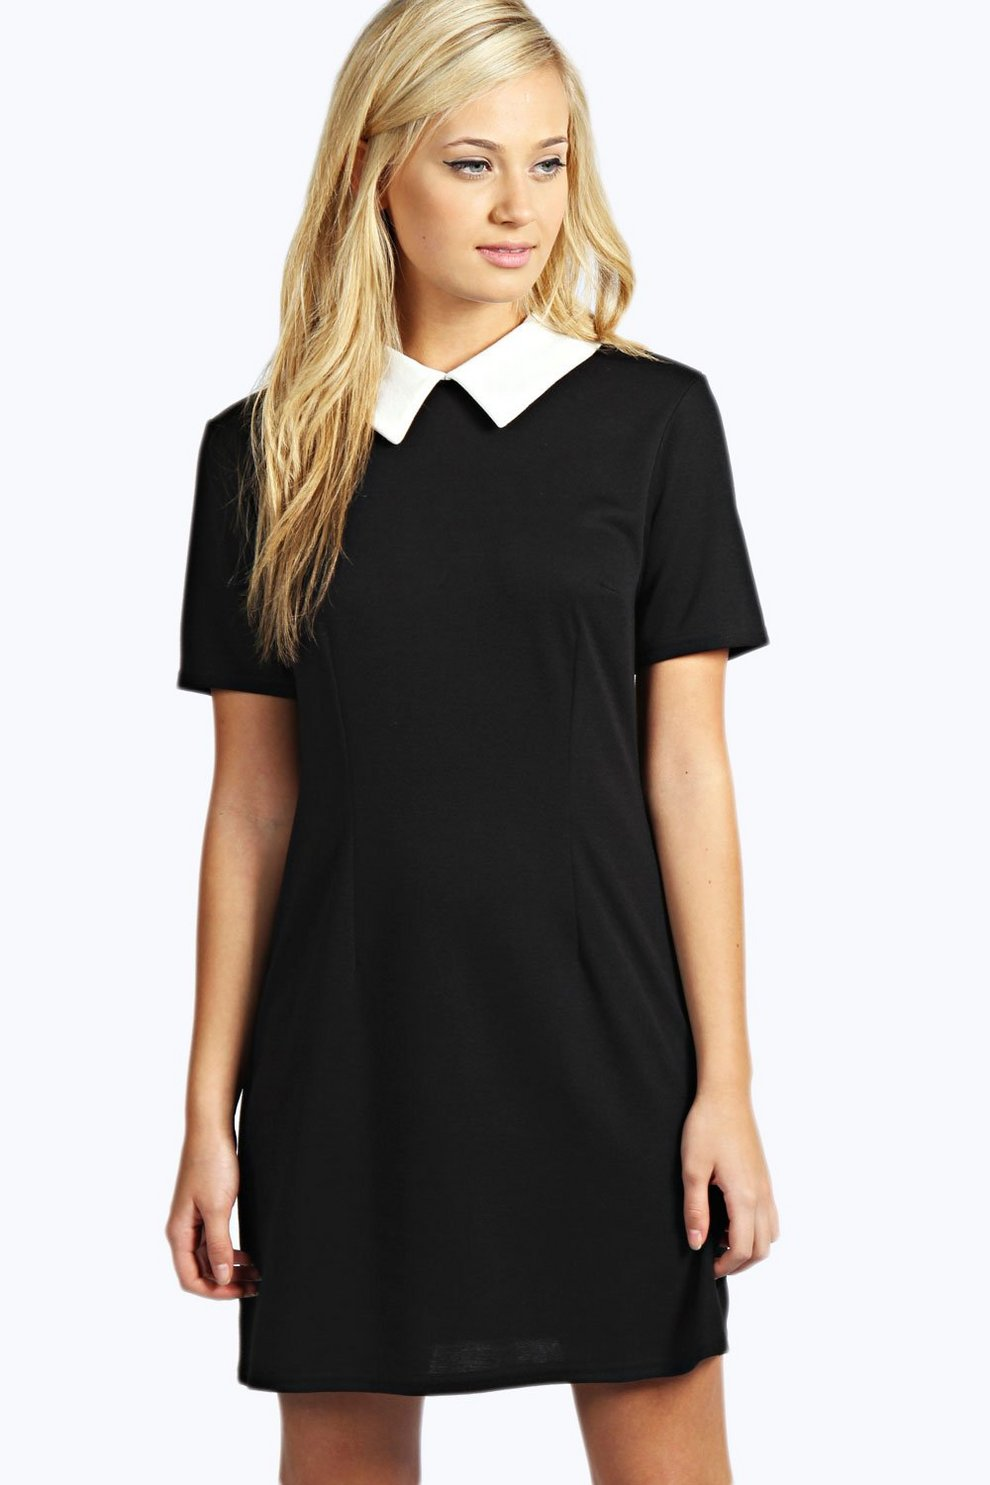 Black dress youth unlimited